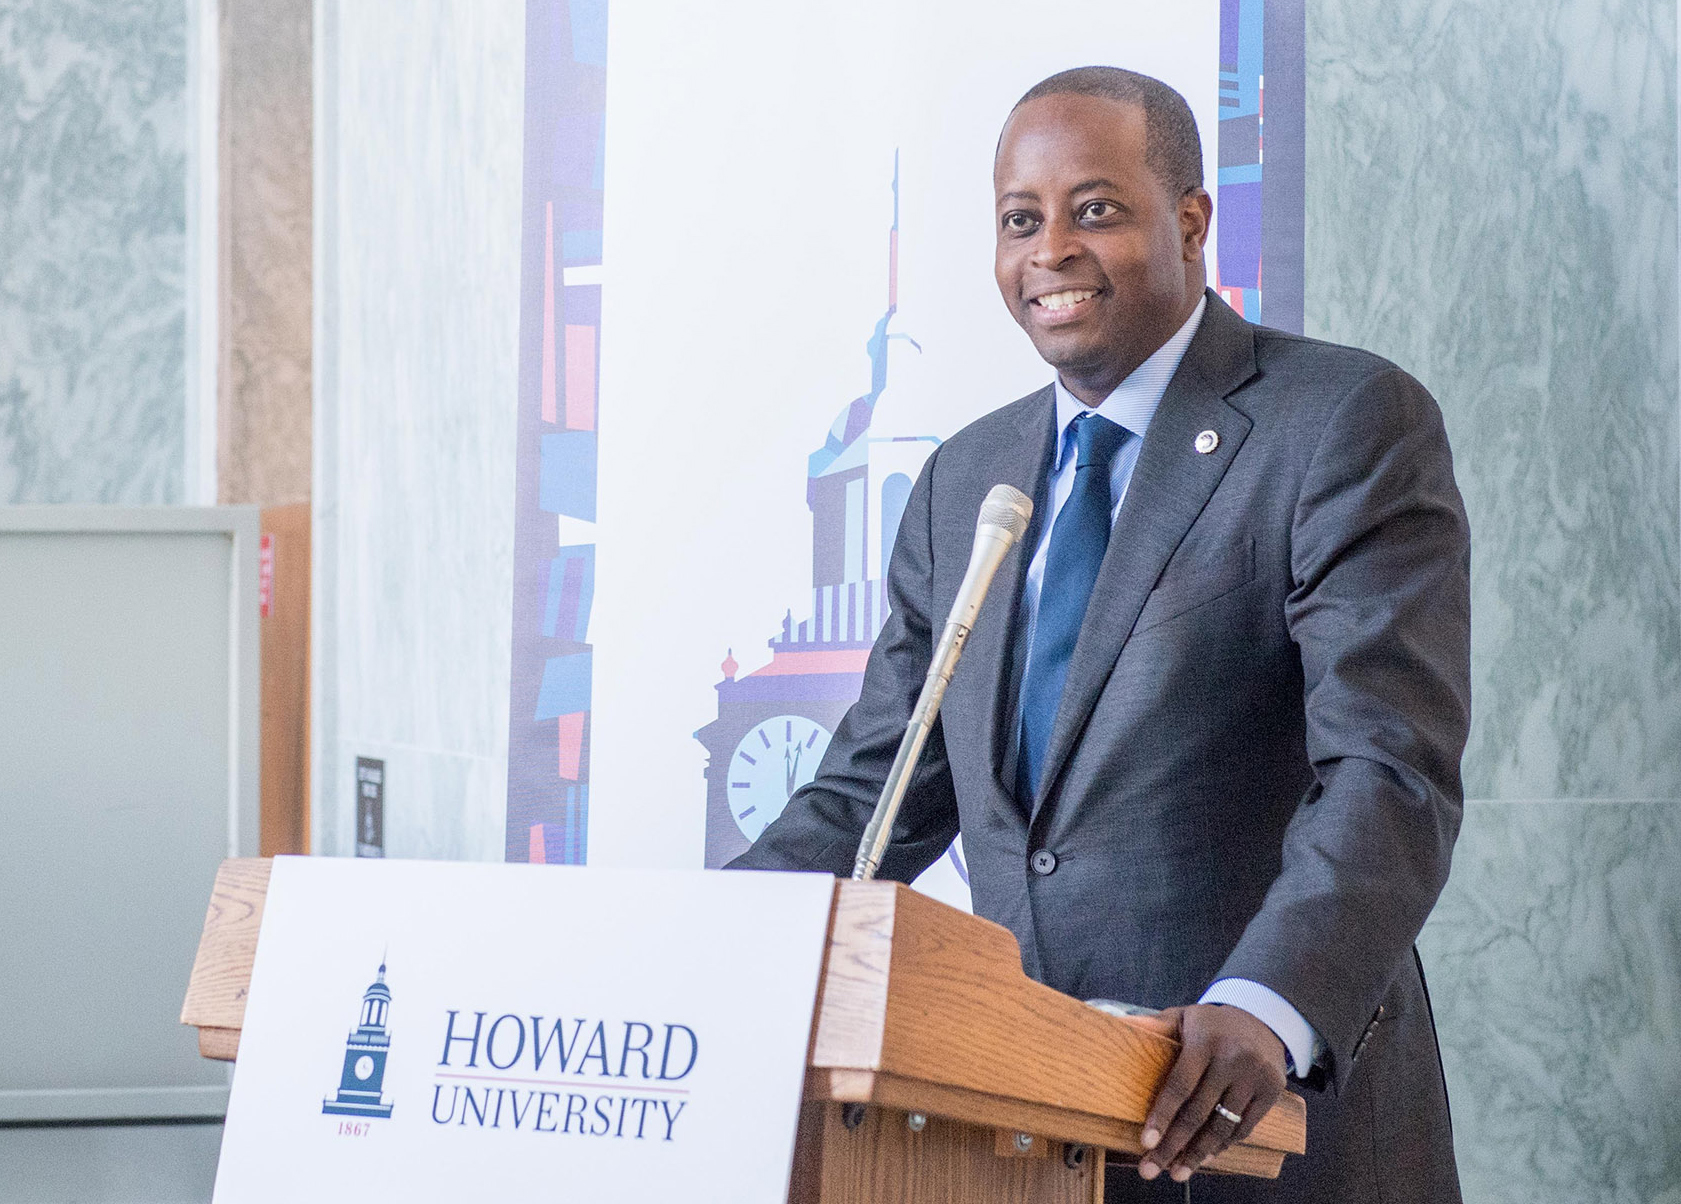 Howard University President Dr. Wayne A.I. Frederick says that sickle cell disease is not a death sentence. People living with SCD can still play sports, go to school, have careers and live productive lives. (Howard University)